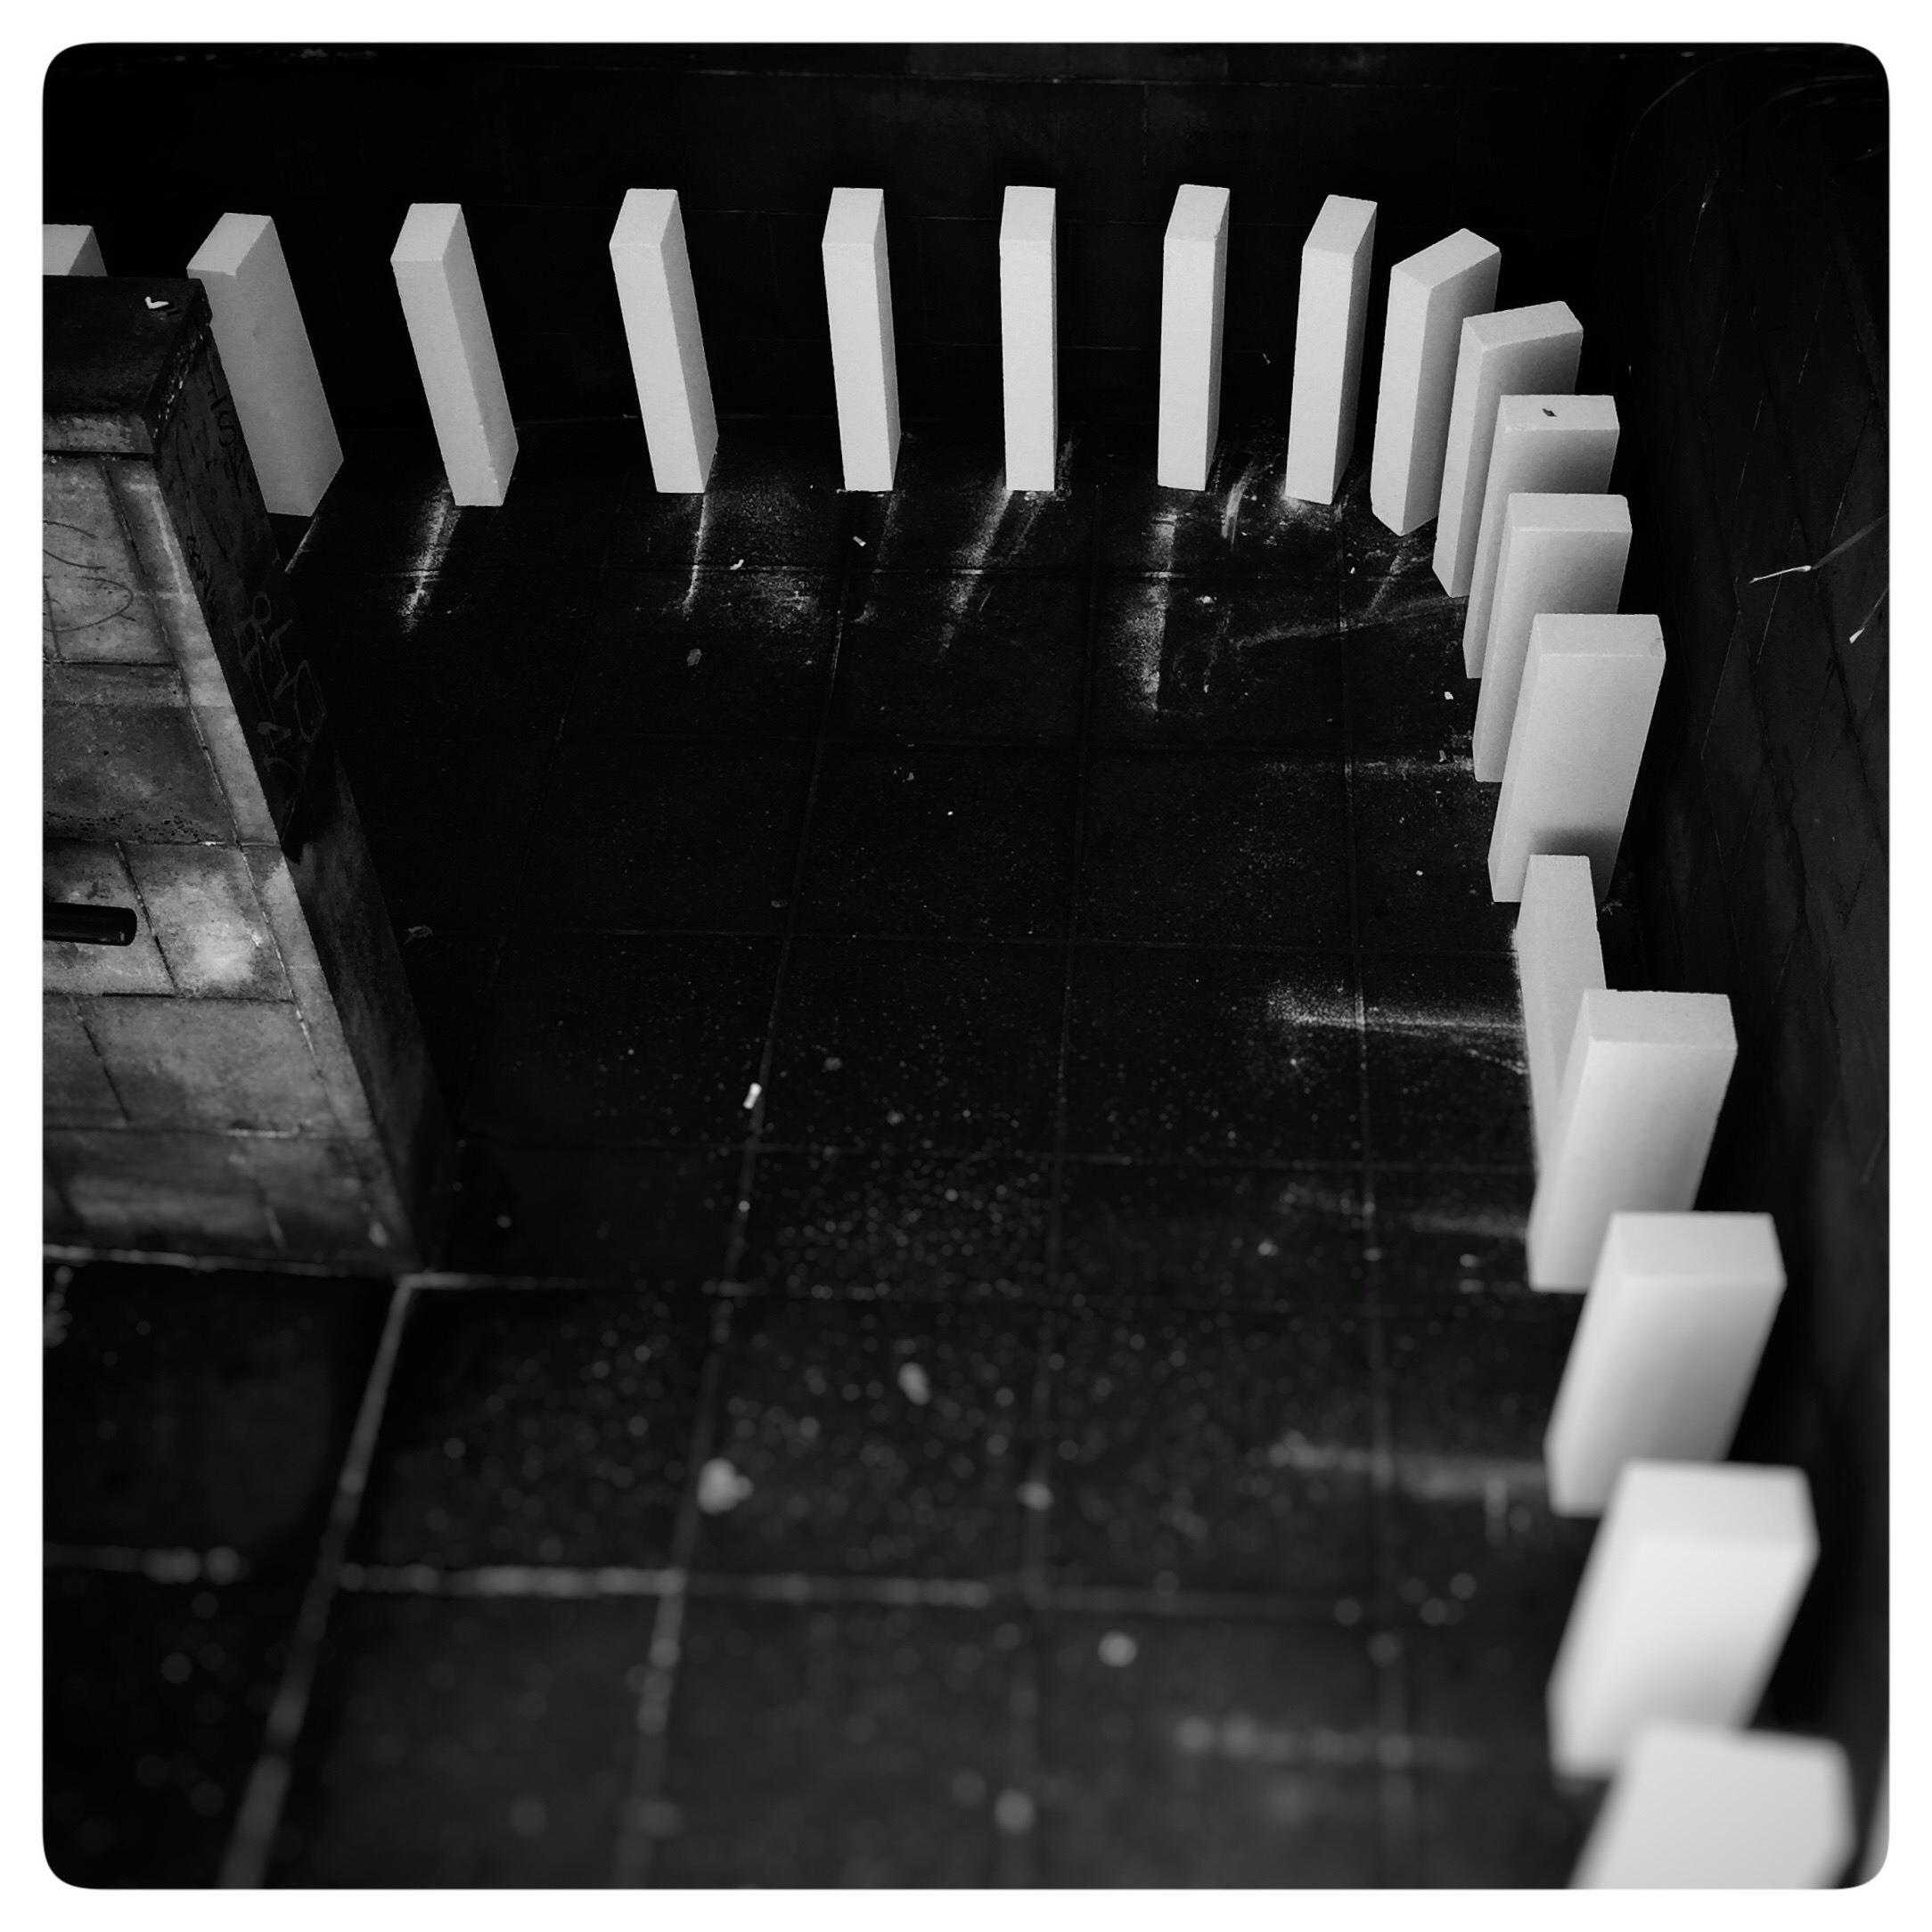 Day 1768. The Domino Effect